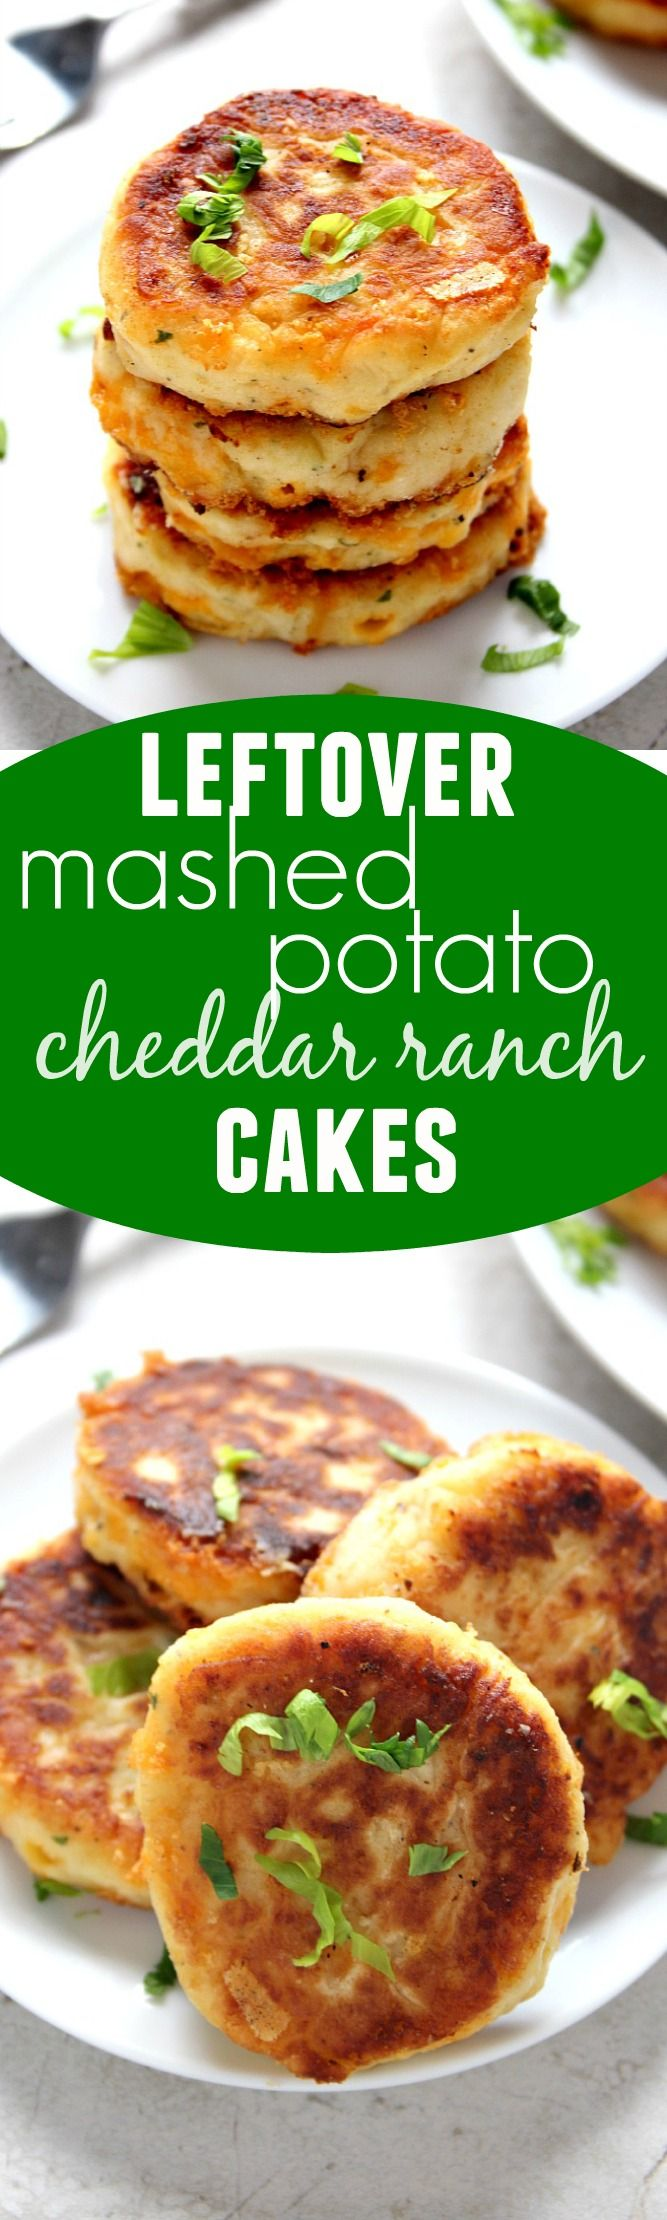 The best use for your leftover mashed potatoes. Crispy cakes filled with cheese and ranch seasoning. Just 5 ingredients and 20 minutes is all you need to make them!